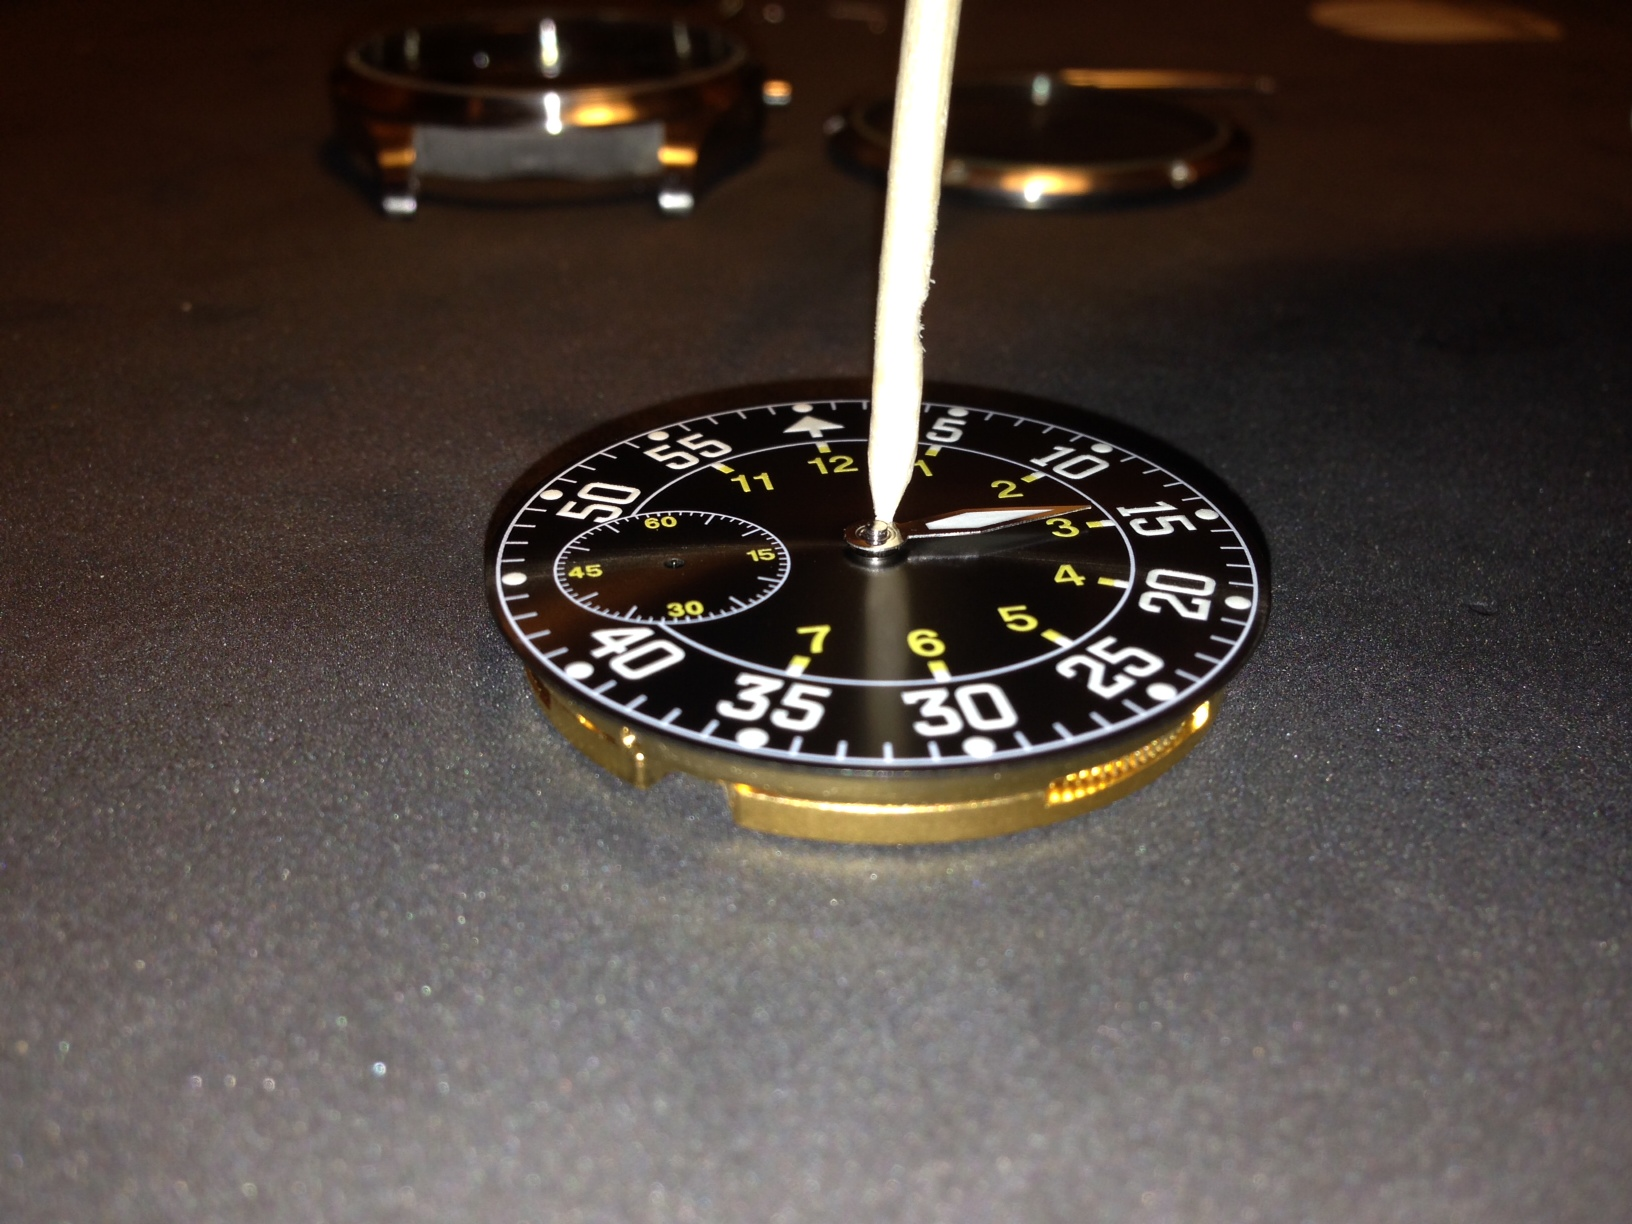 How to build your own mechanical watch - Attach the hour hand